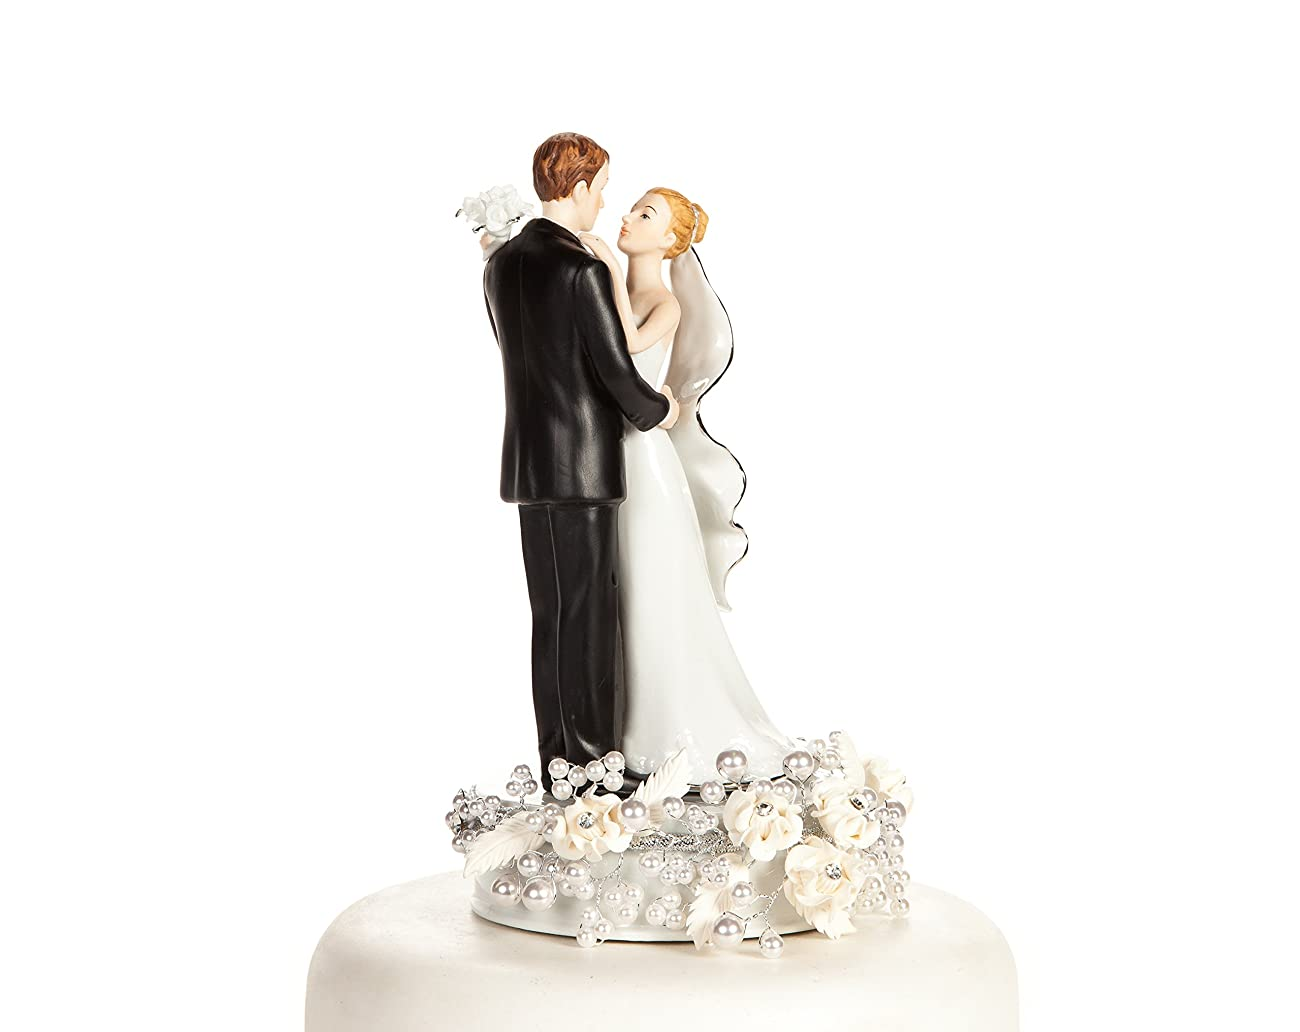 White and Silver Vintage Rose Pearl Wedding Cake Topper: Base Color: White with Silver Wiring 1